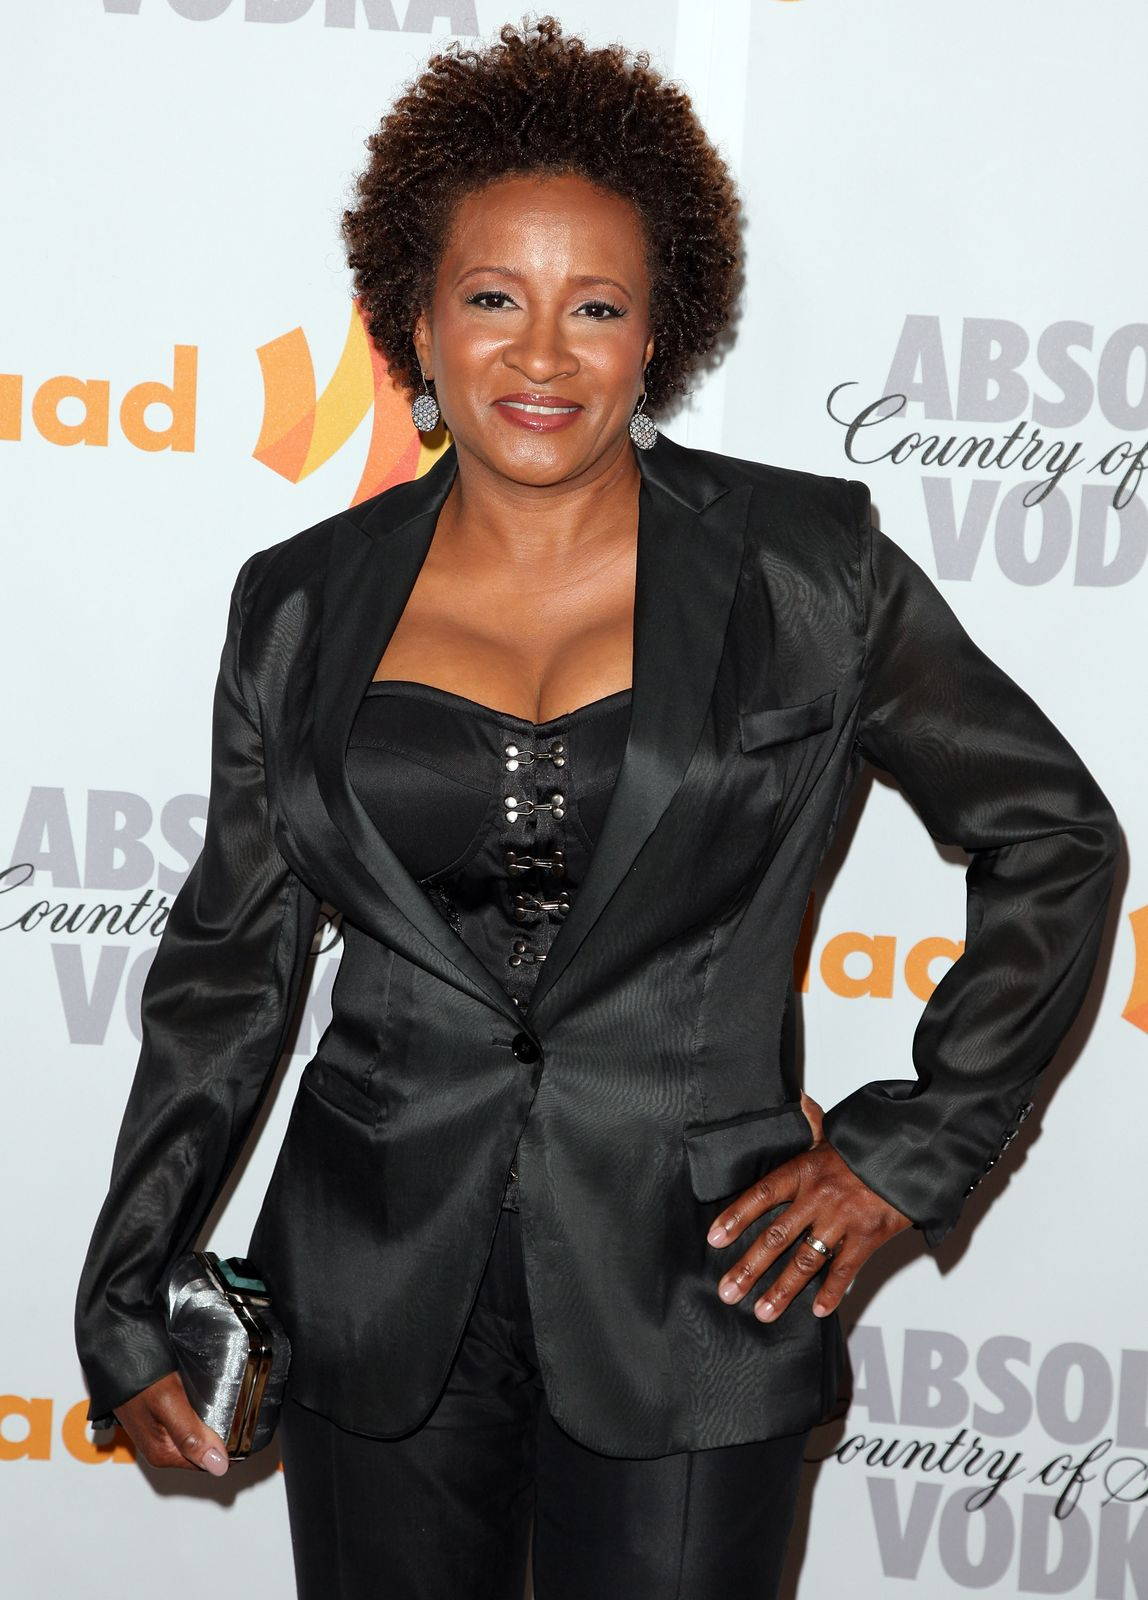 A picture of Wanda Sykes at an event | Photo: Getty Images